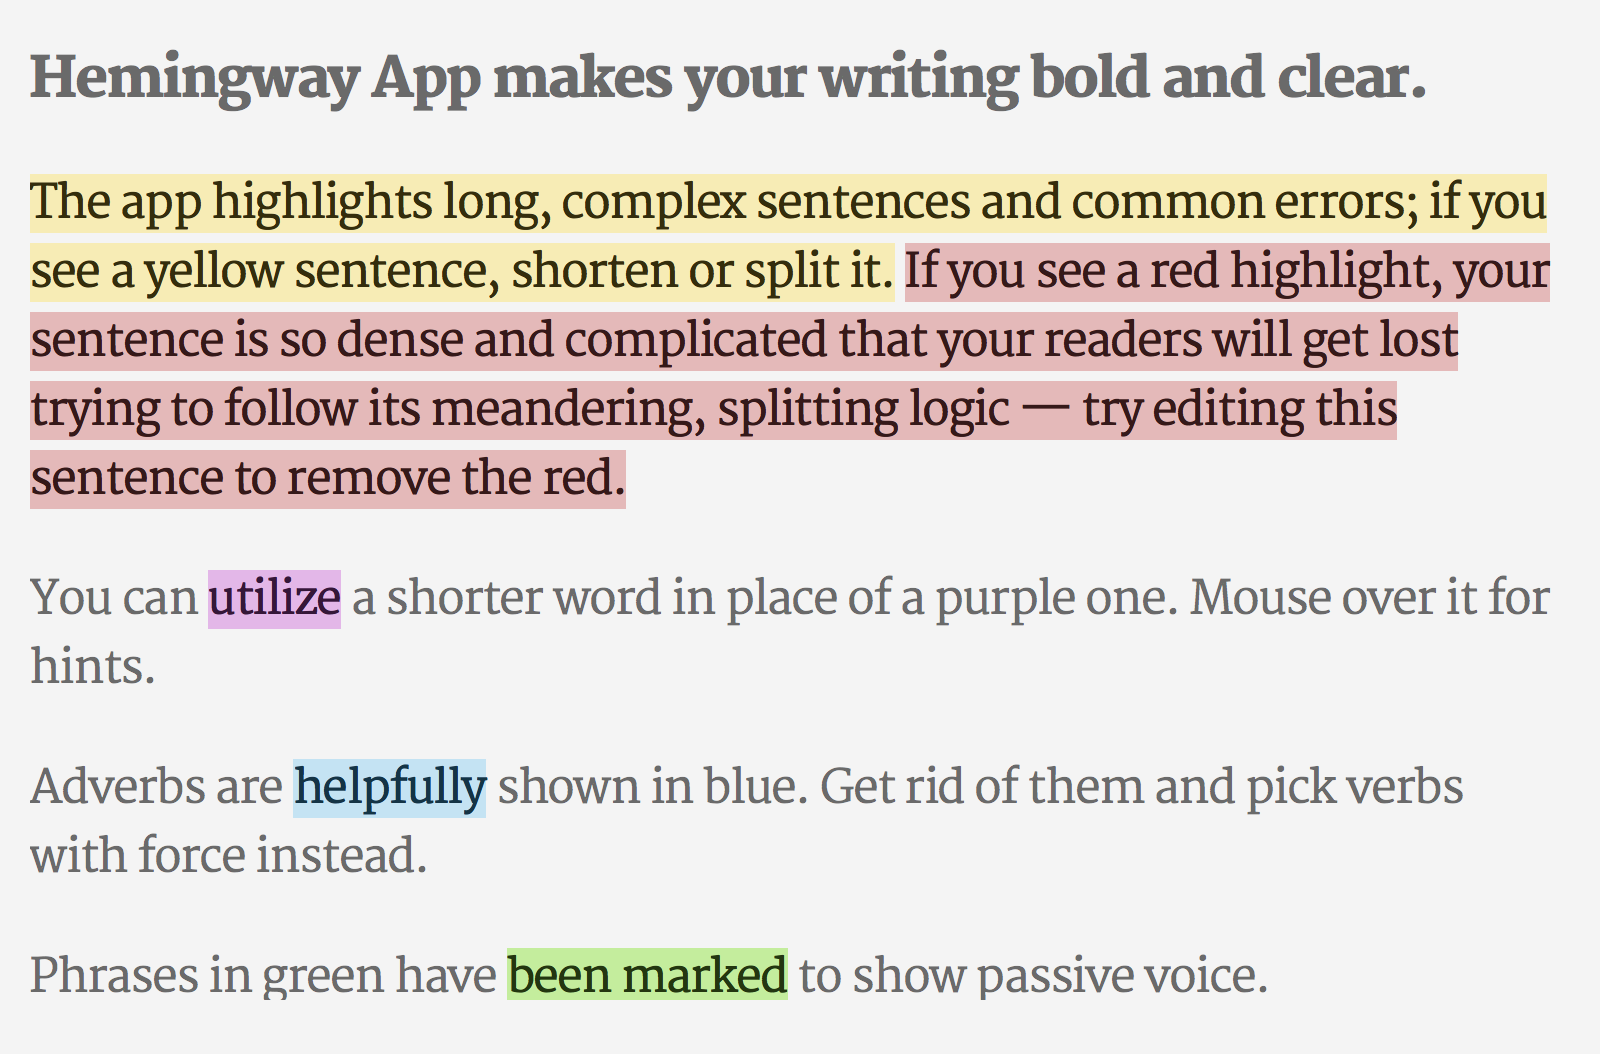 Hemingway Editor is a neat tool that is like an English Teacher for your content